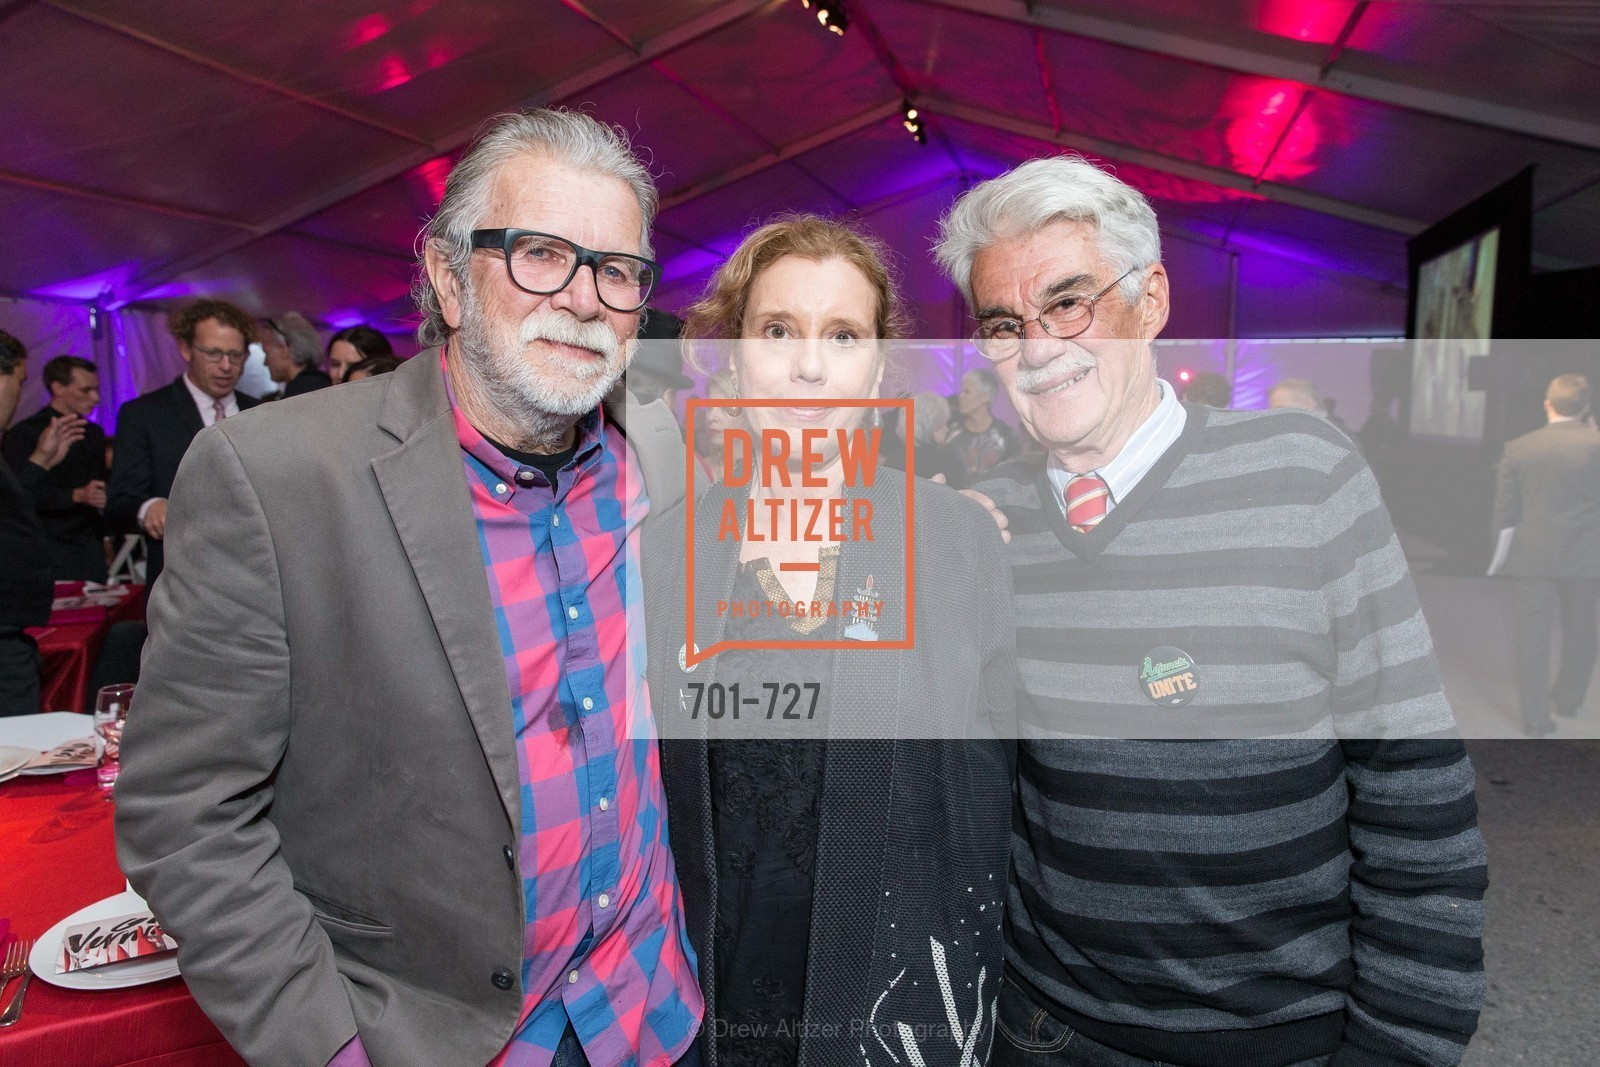 Robert Hudson, Mary Hull Webster, Richard Shaw, SAN FRANCISCO ART INSTITUTE Gala Honoring Art Visionary and Advocate ROSELYNE CHROMAN SWIG, US, May 14th, 2015,Drew Altizer, Drew Altizer Photography, full-service agency, private events, San Francisco photographer, photographer california